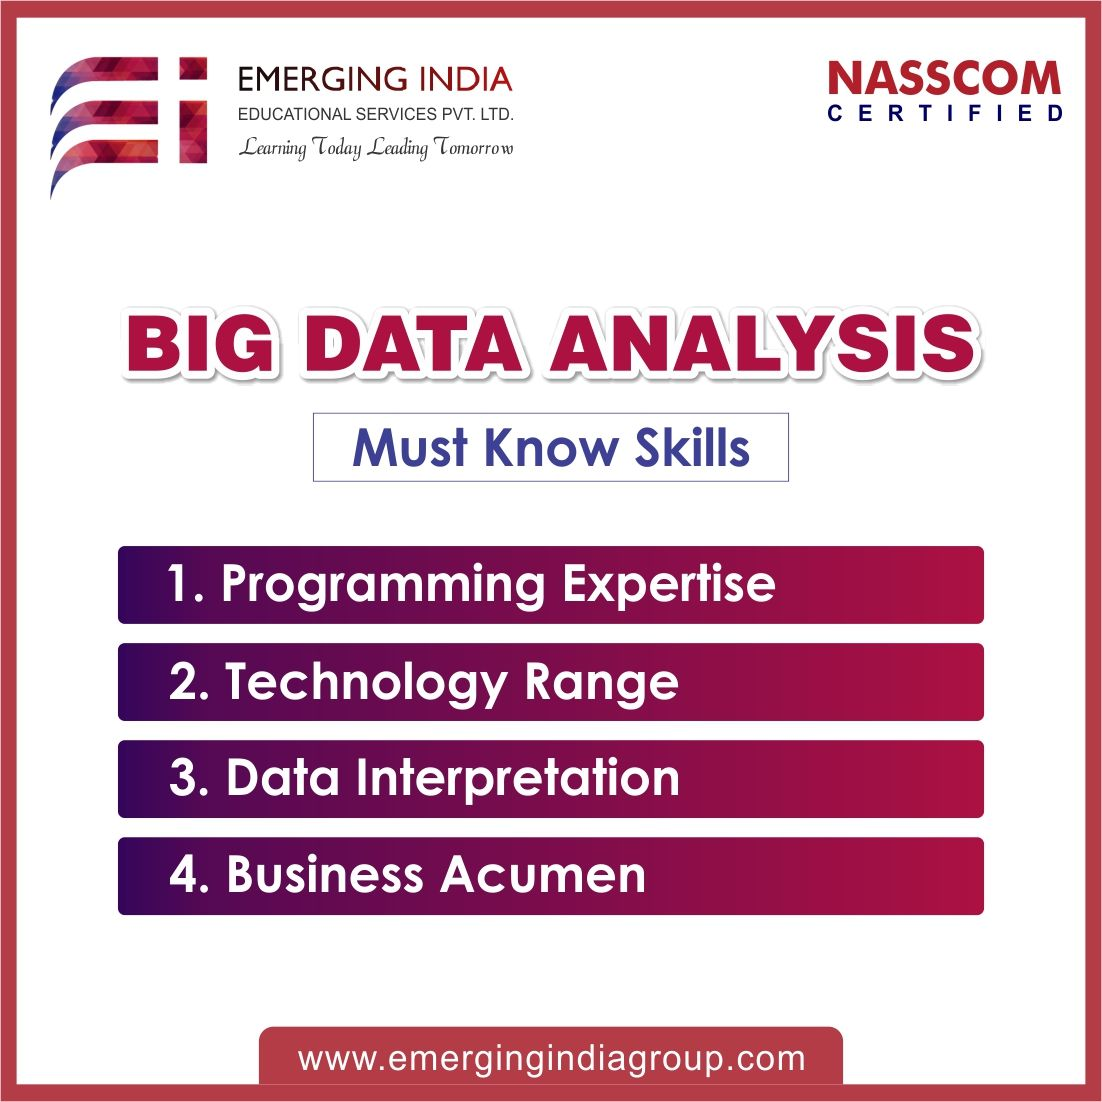 Big data is the sparking revolution in the field of